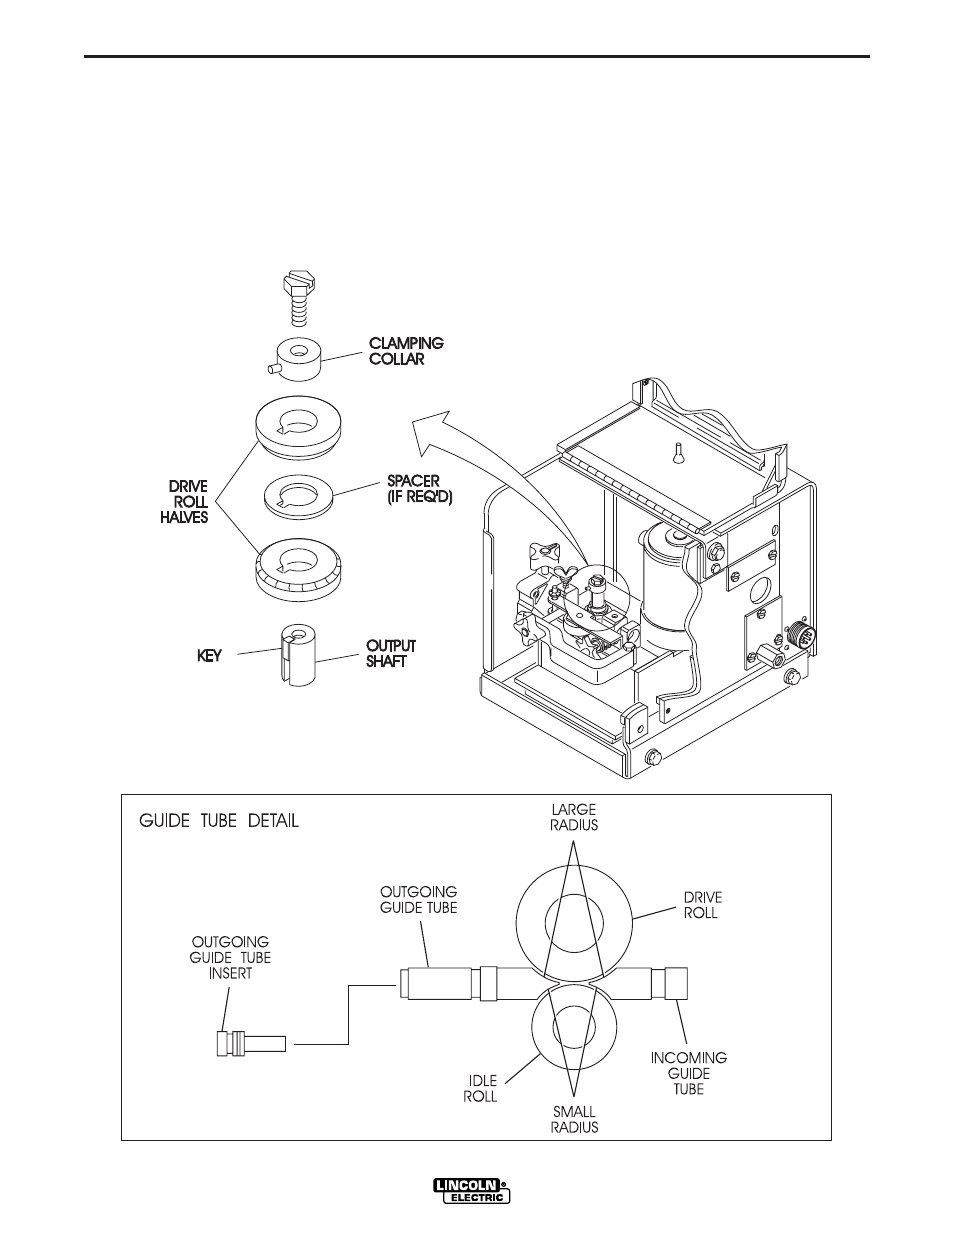 Operation | Lincoln Electric LN-7 GMA WIRE FEEDERS User Manual | Page 33 /  61